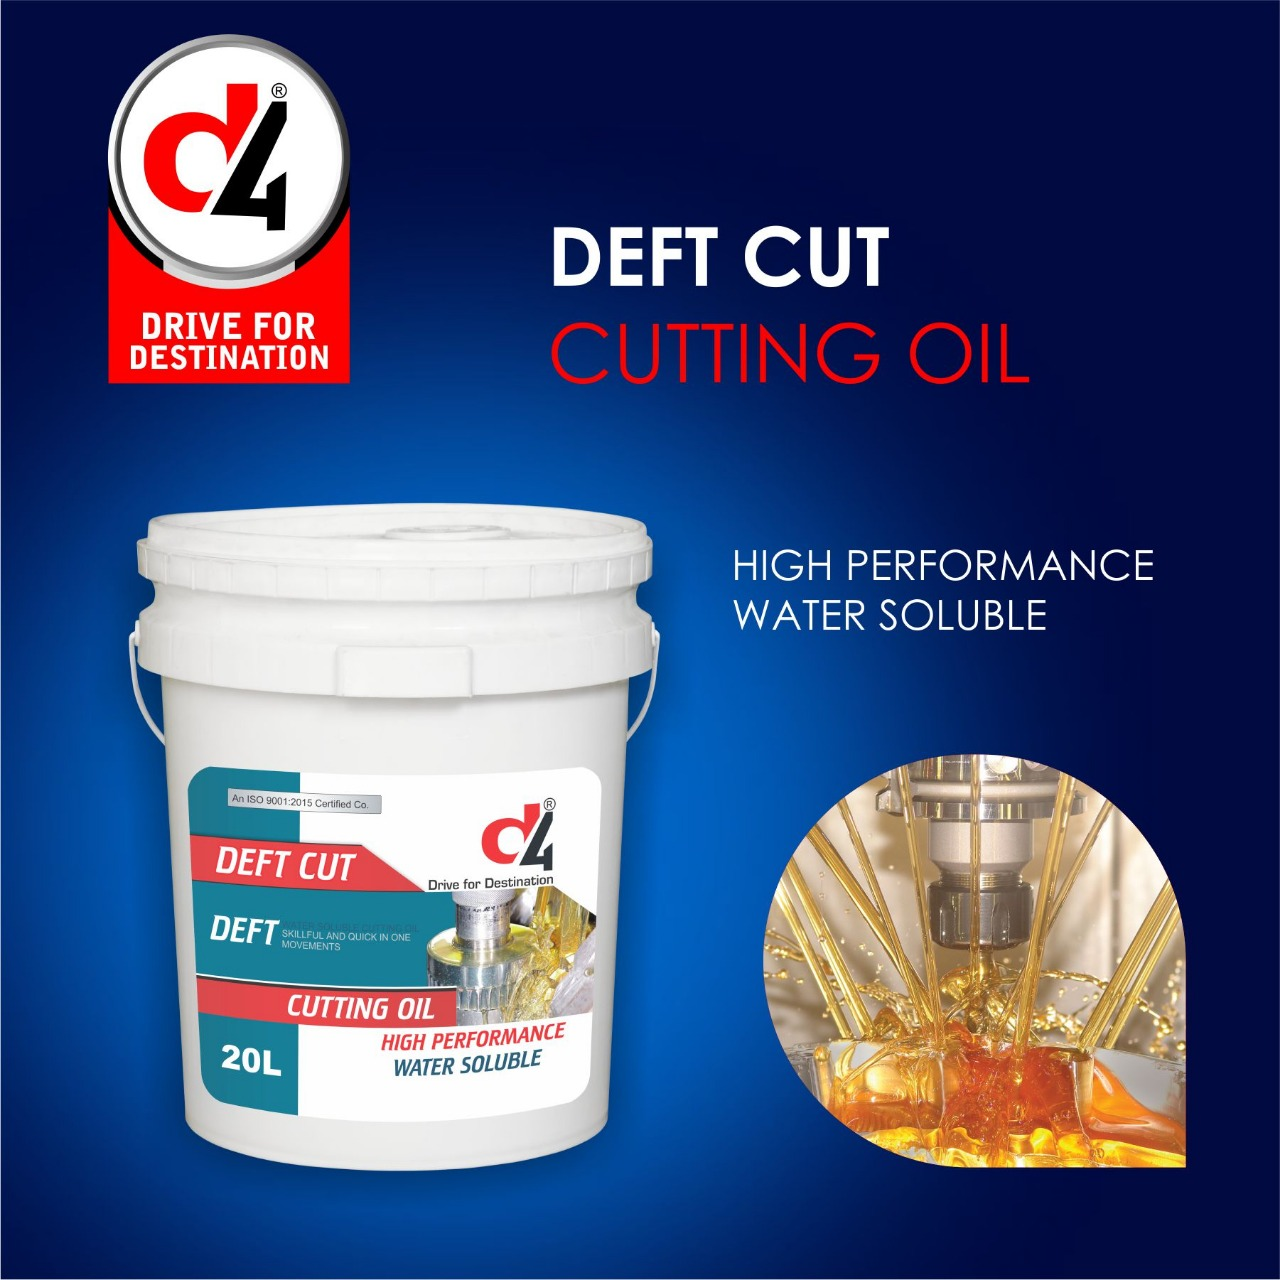 Cutting Oil Manufacturers and Suppliers